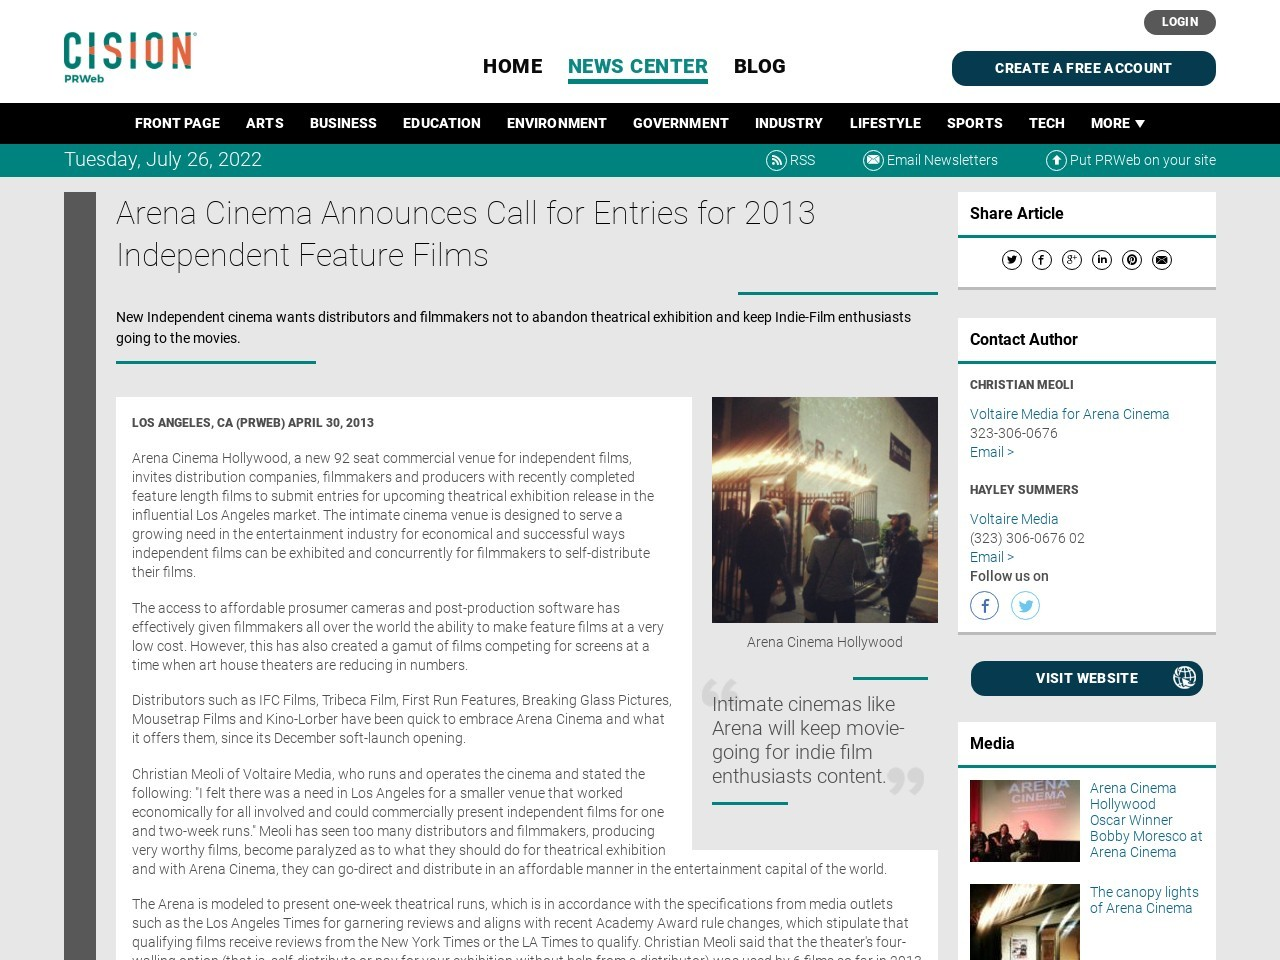 Arena Cinema Announces Call for Entries for 2013 Independent Feature Films